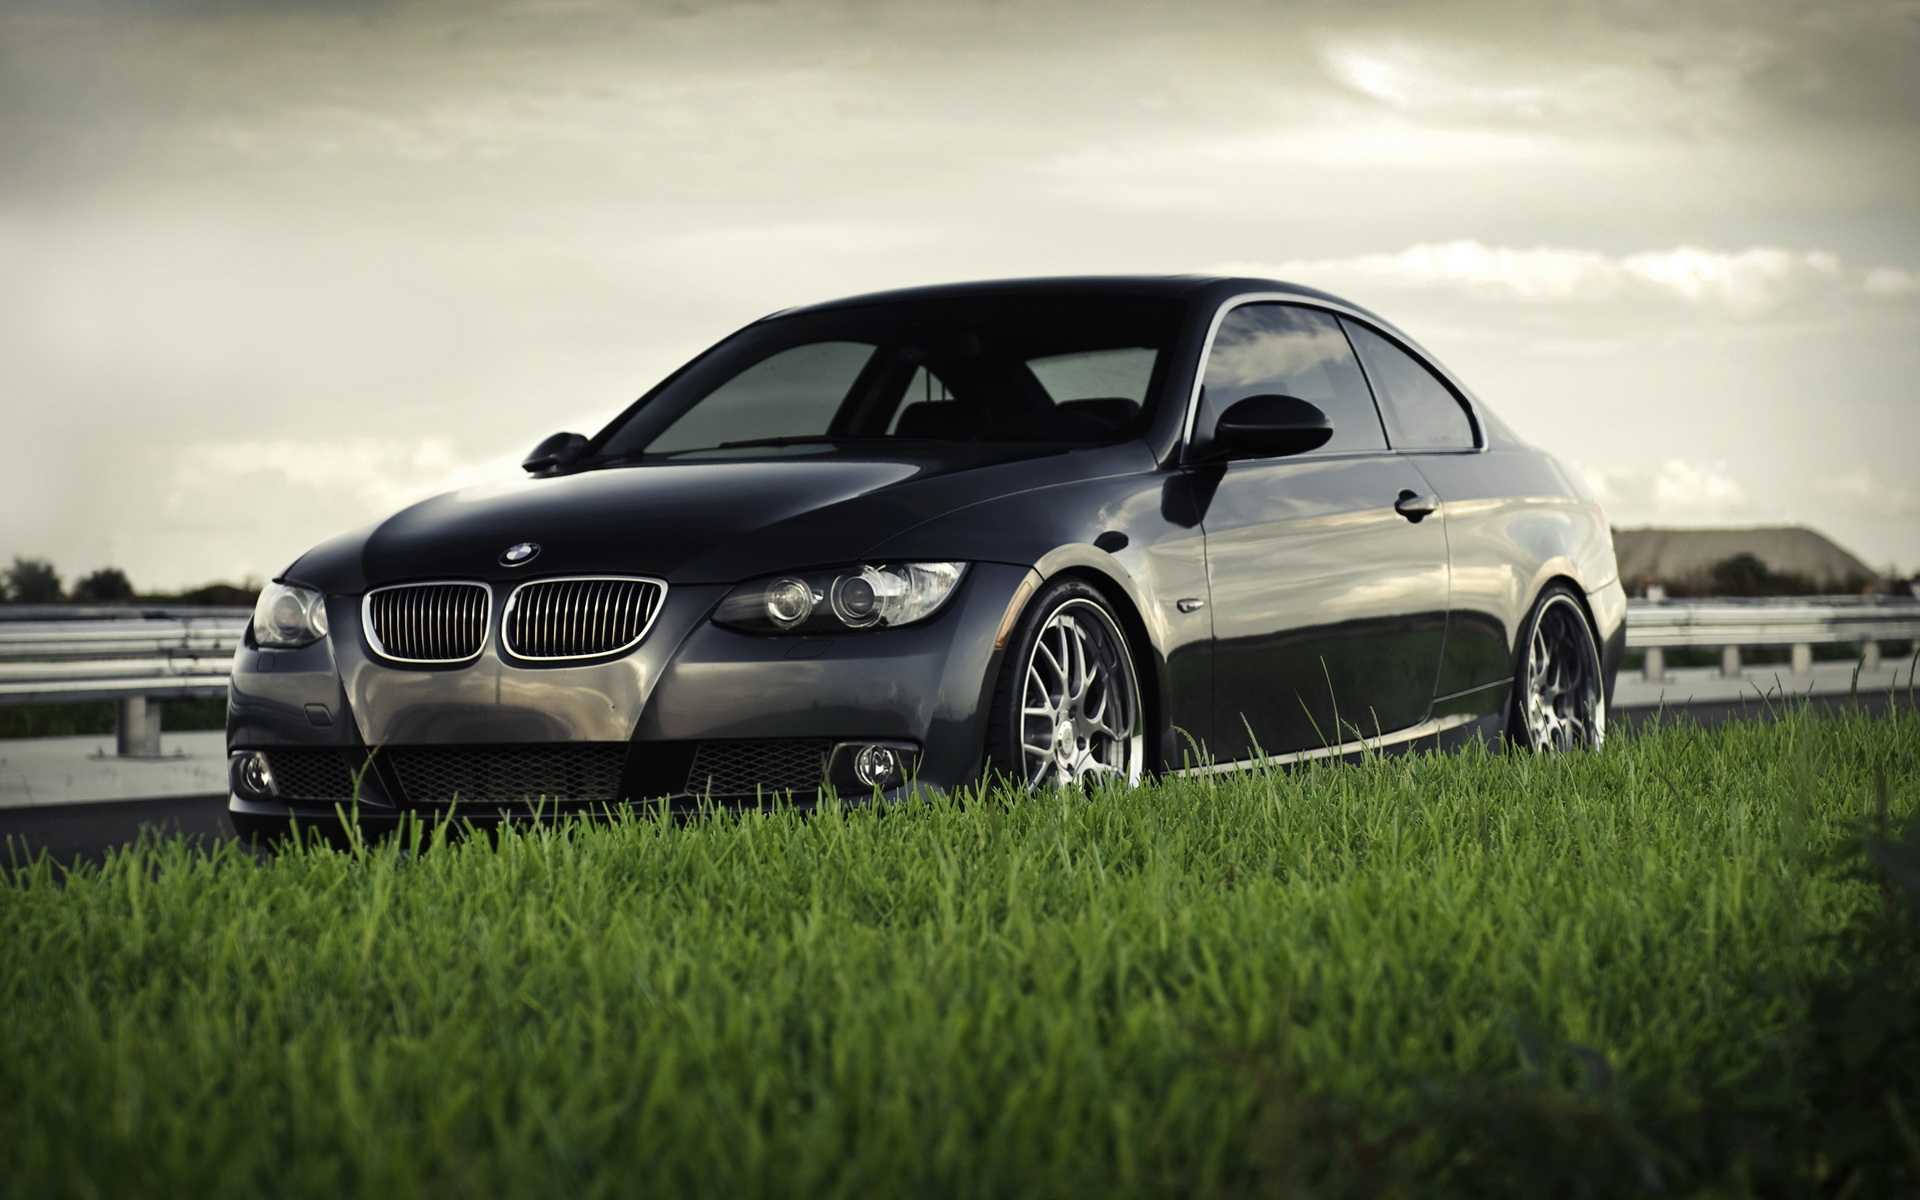 Bmw 335i Coupe Car Hd Wallpapers For Window 8 1920x1200 Download Hd Wallpaper Wallpapertip